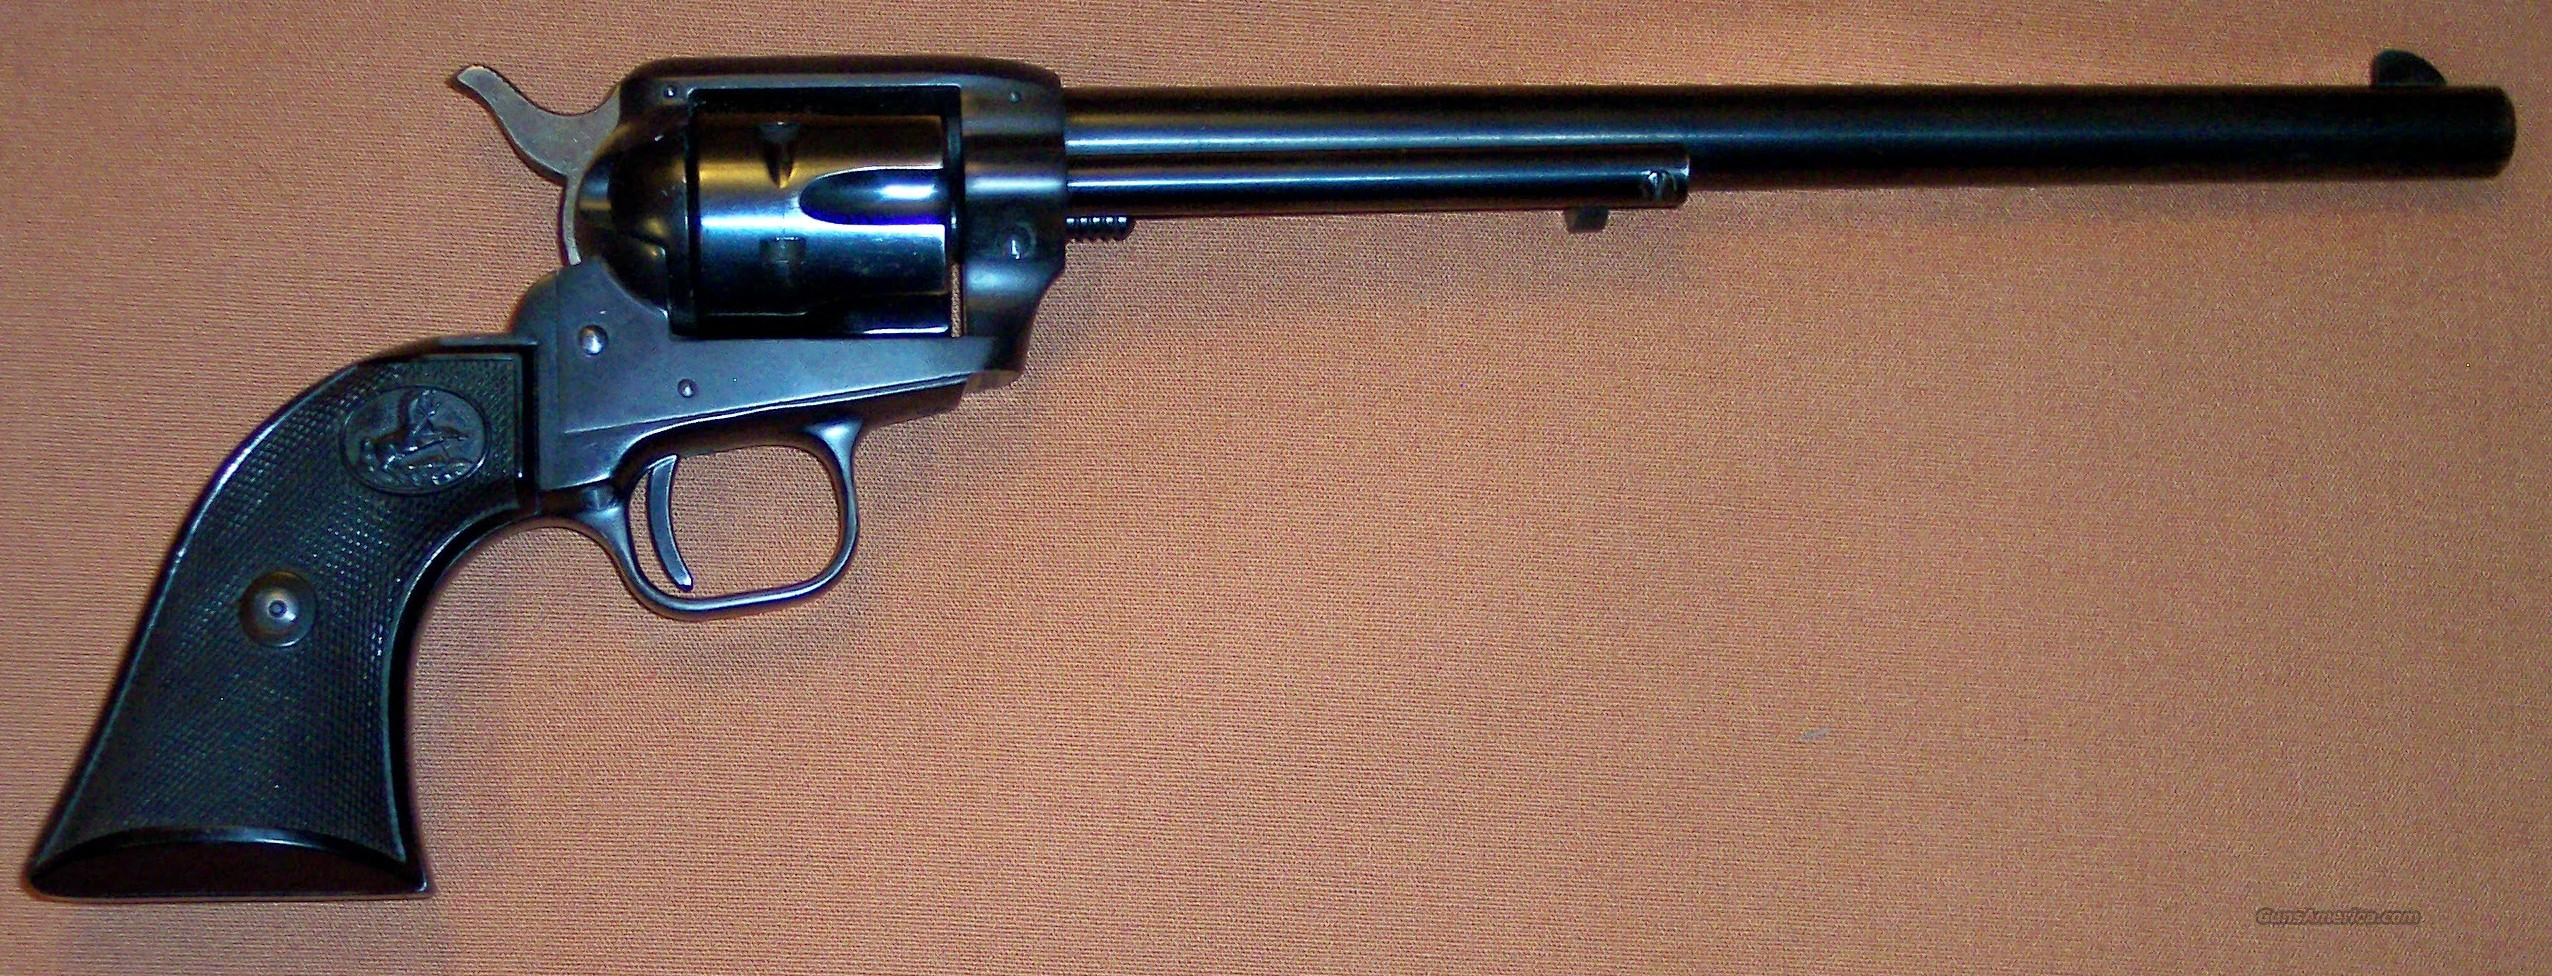 "Colt Single Action Buntline Scout .22LR with 9.5"" Barrel and Holster  Guns > Pistols > Colt Single Action Revolvers - Modern (22 Cal.)"